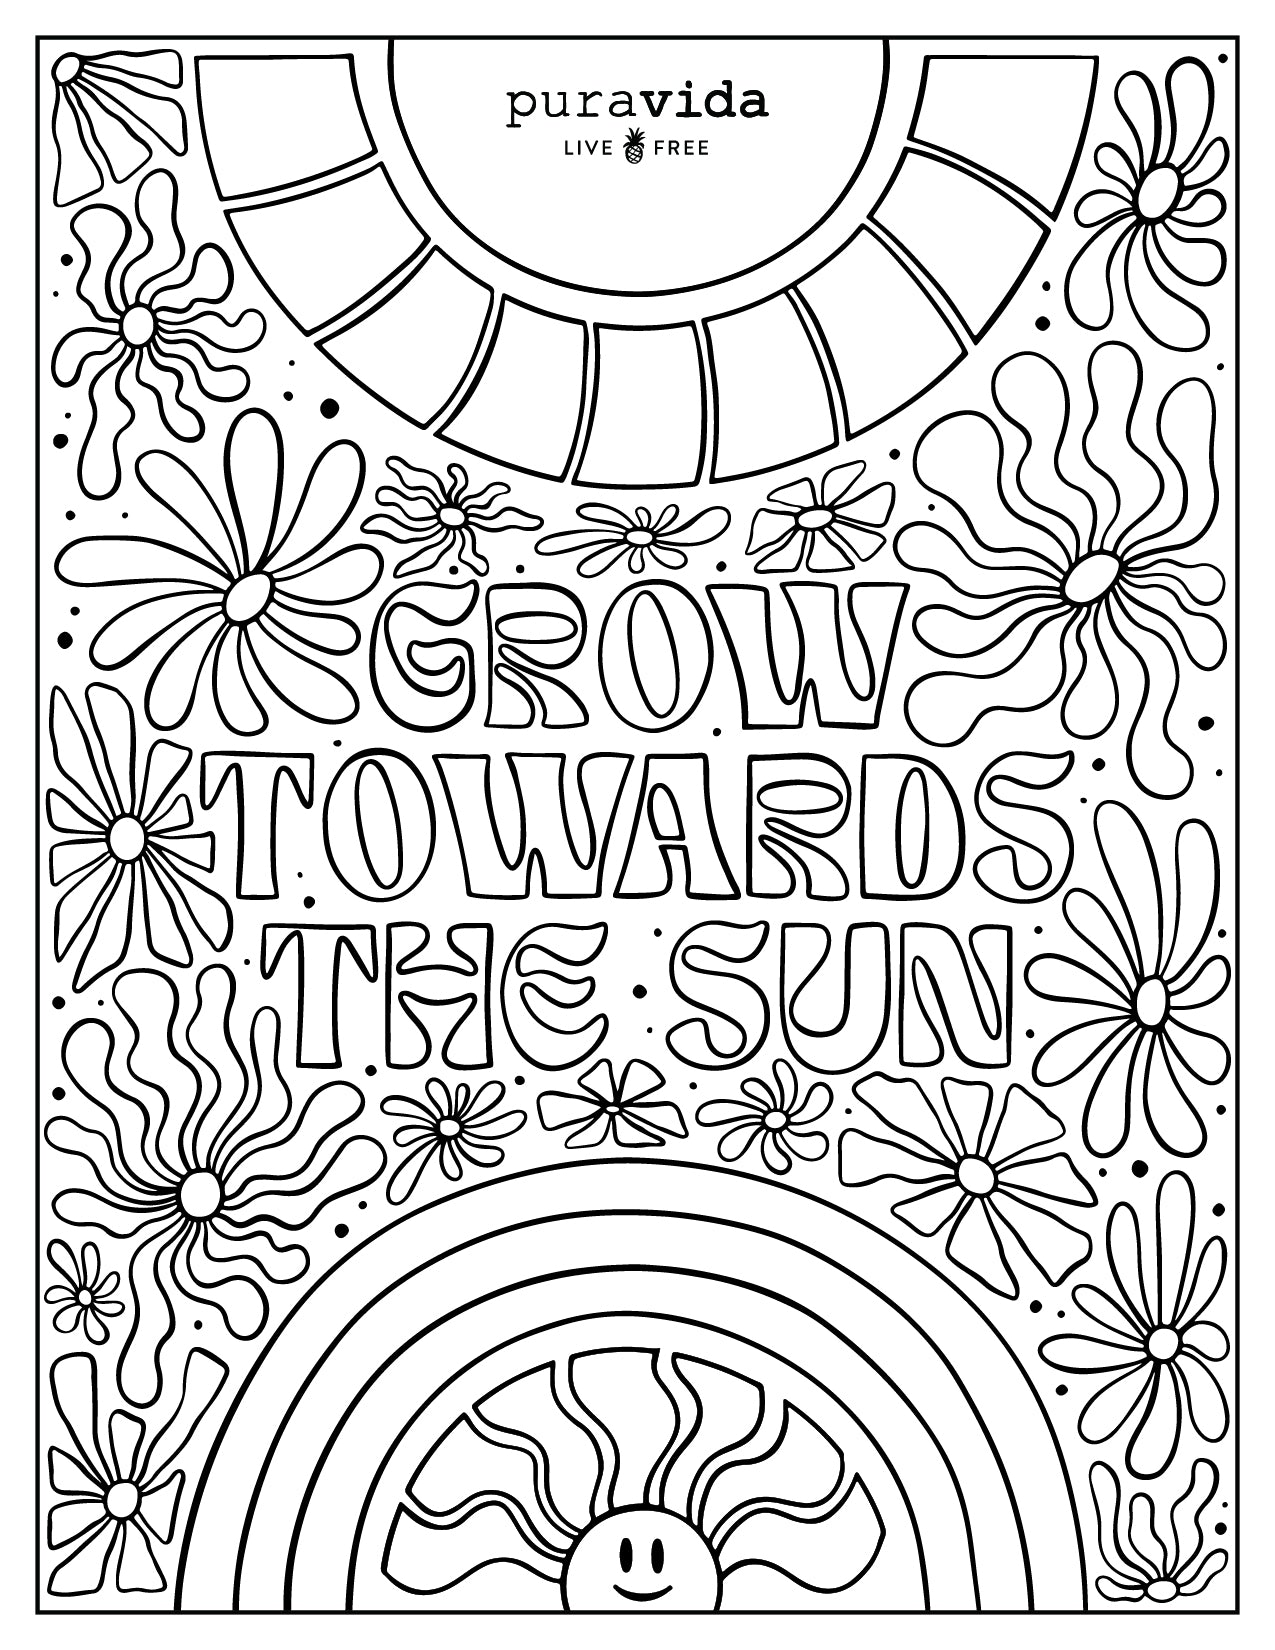 PV Birthday Coloring Sheets - Grow Towards the Sun